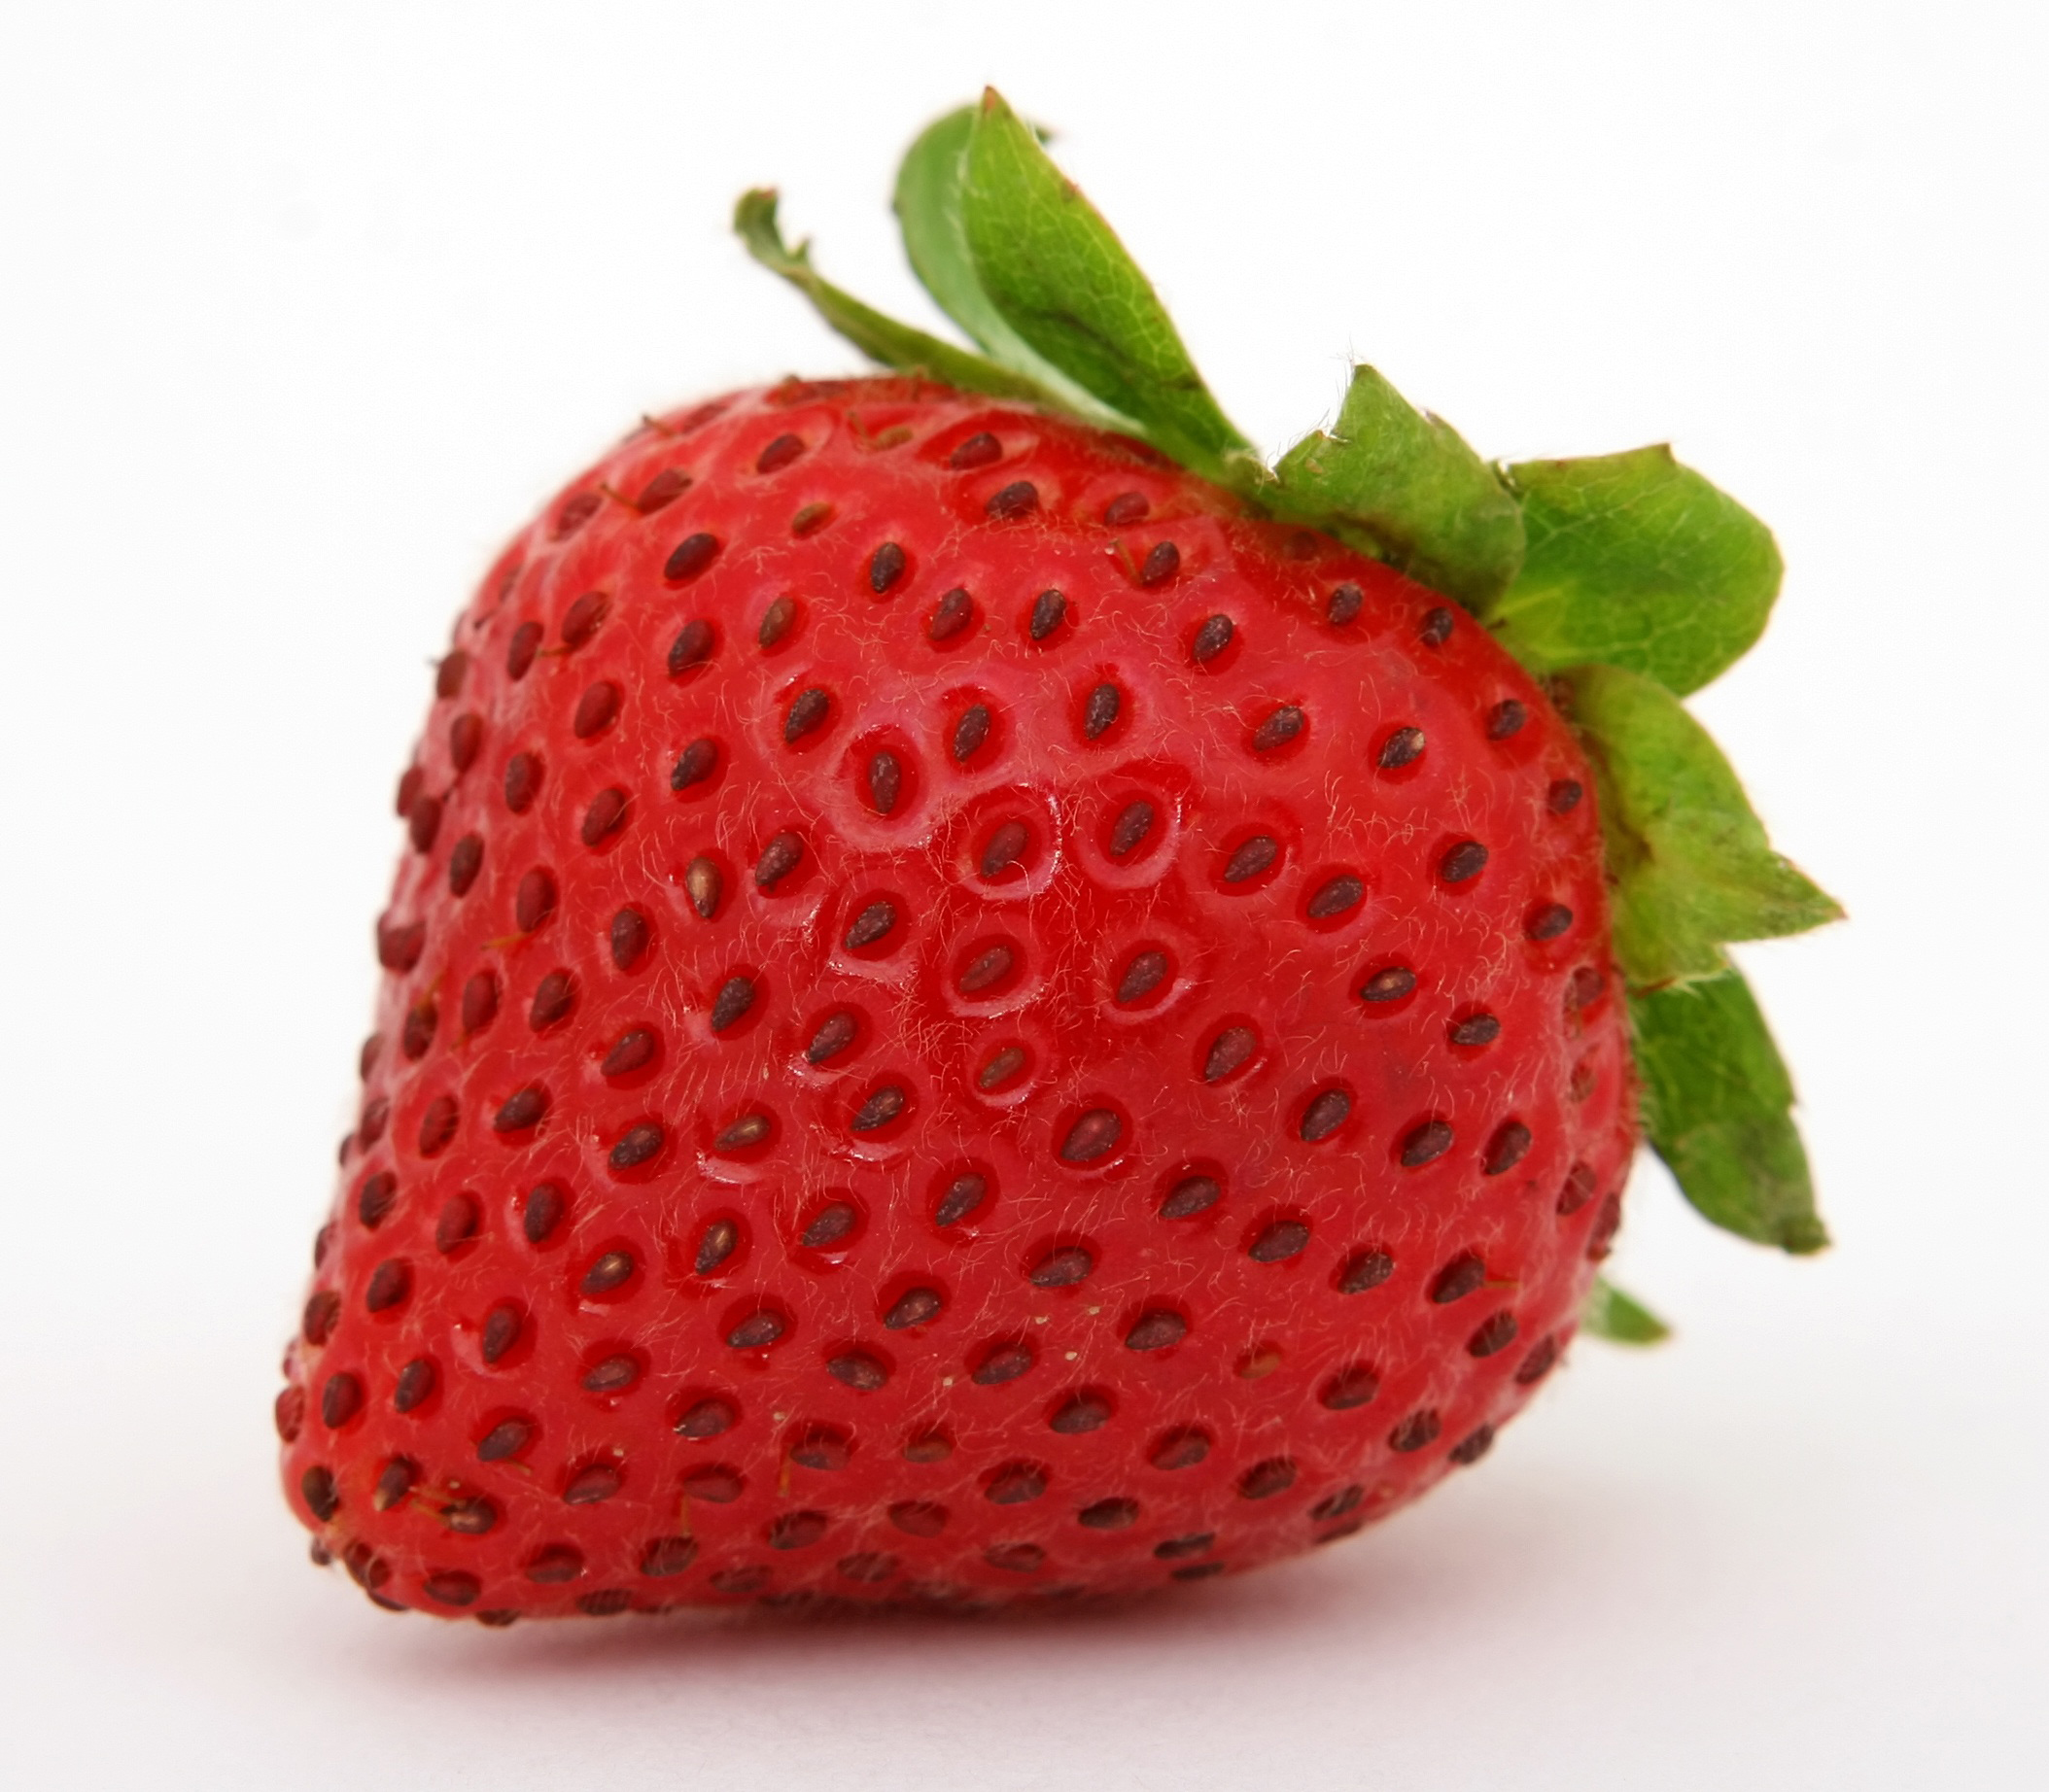 Strawberry, fruit, red, ripe, healthy